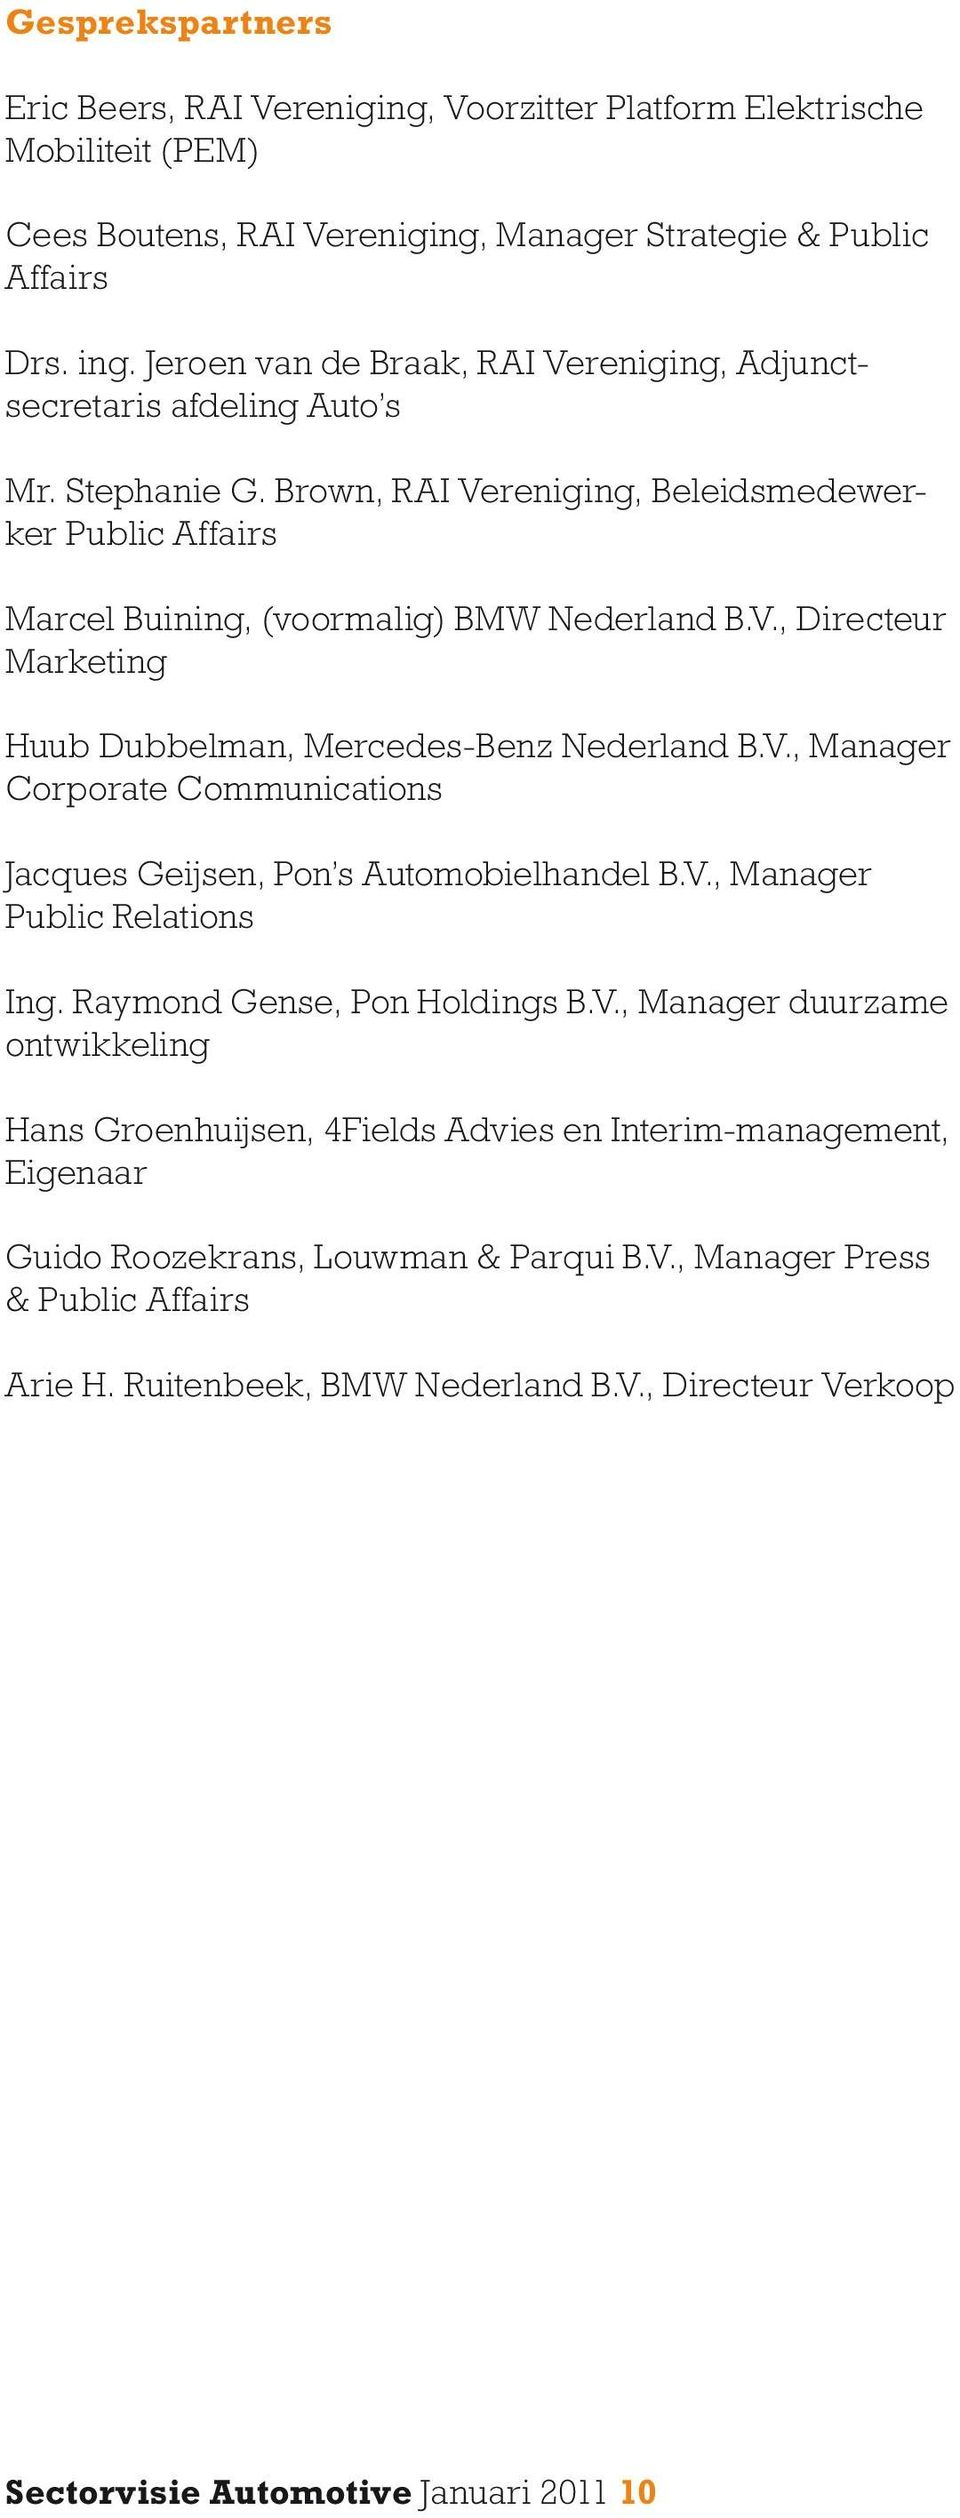 V., Manager Corporate Communications Jacques Geijsen, Pon s Automobielhandel B.V., Manager Public Relations Ing. Raymond Gense, Pon Holdings B.V., Manager duurzame ontwikkeling Hans Groenhuijsen, 4Fields Advies en Interim-management, Eigenaar Guido Roozekrans, Louwman & Parqui B.